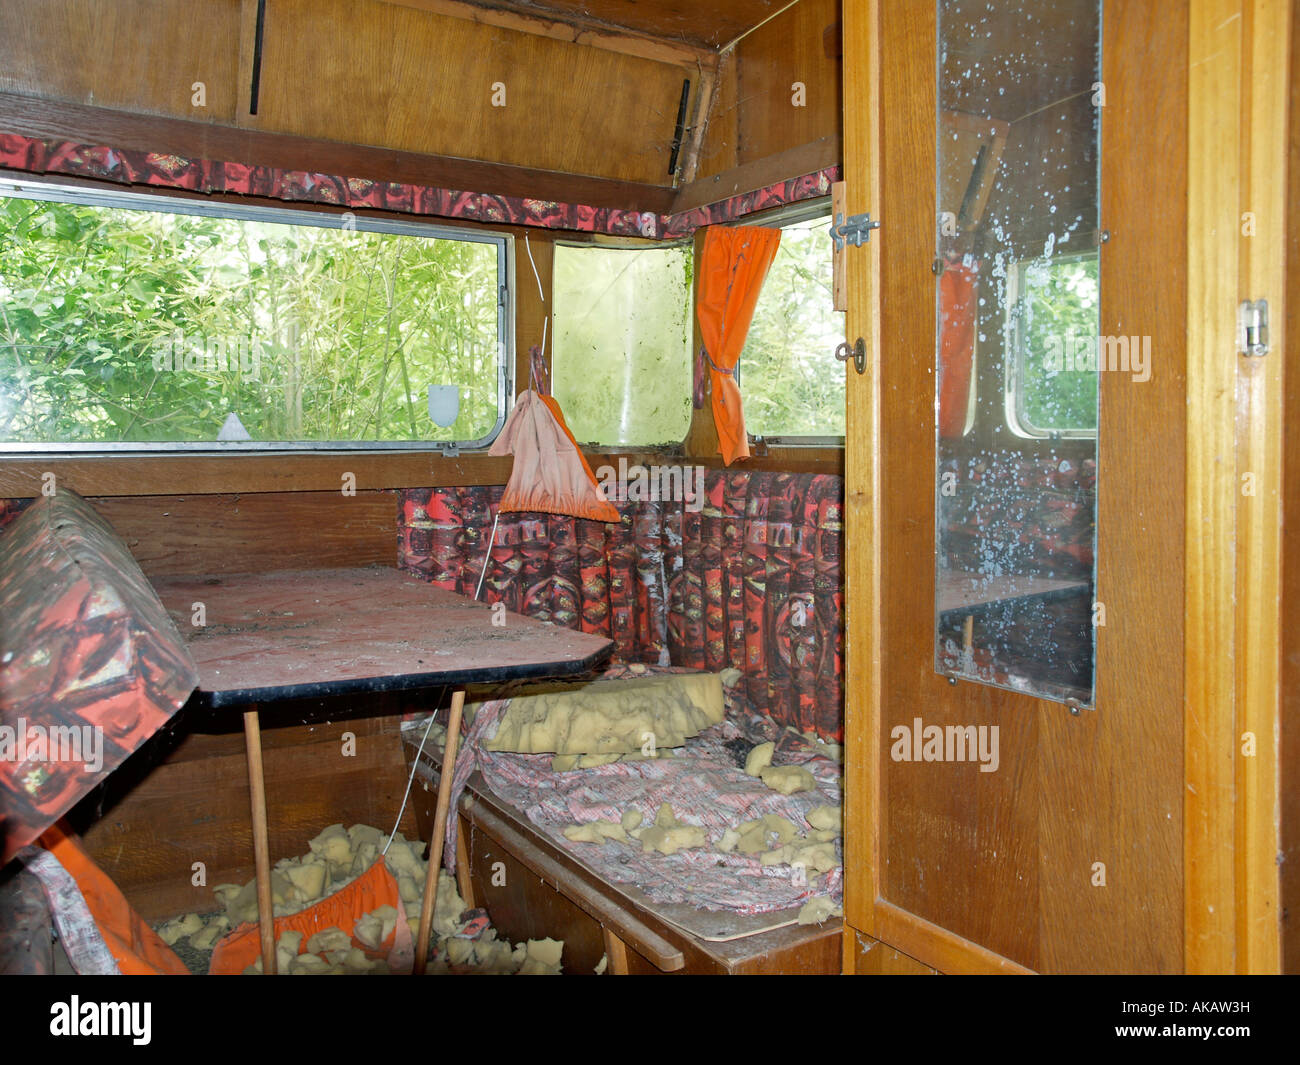 interior view of an old damaged caravan - Stock Image